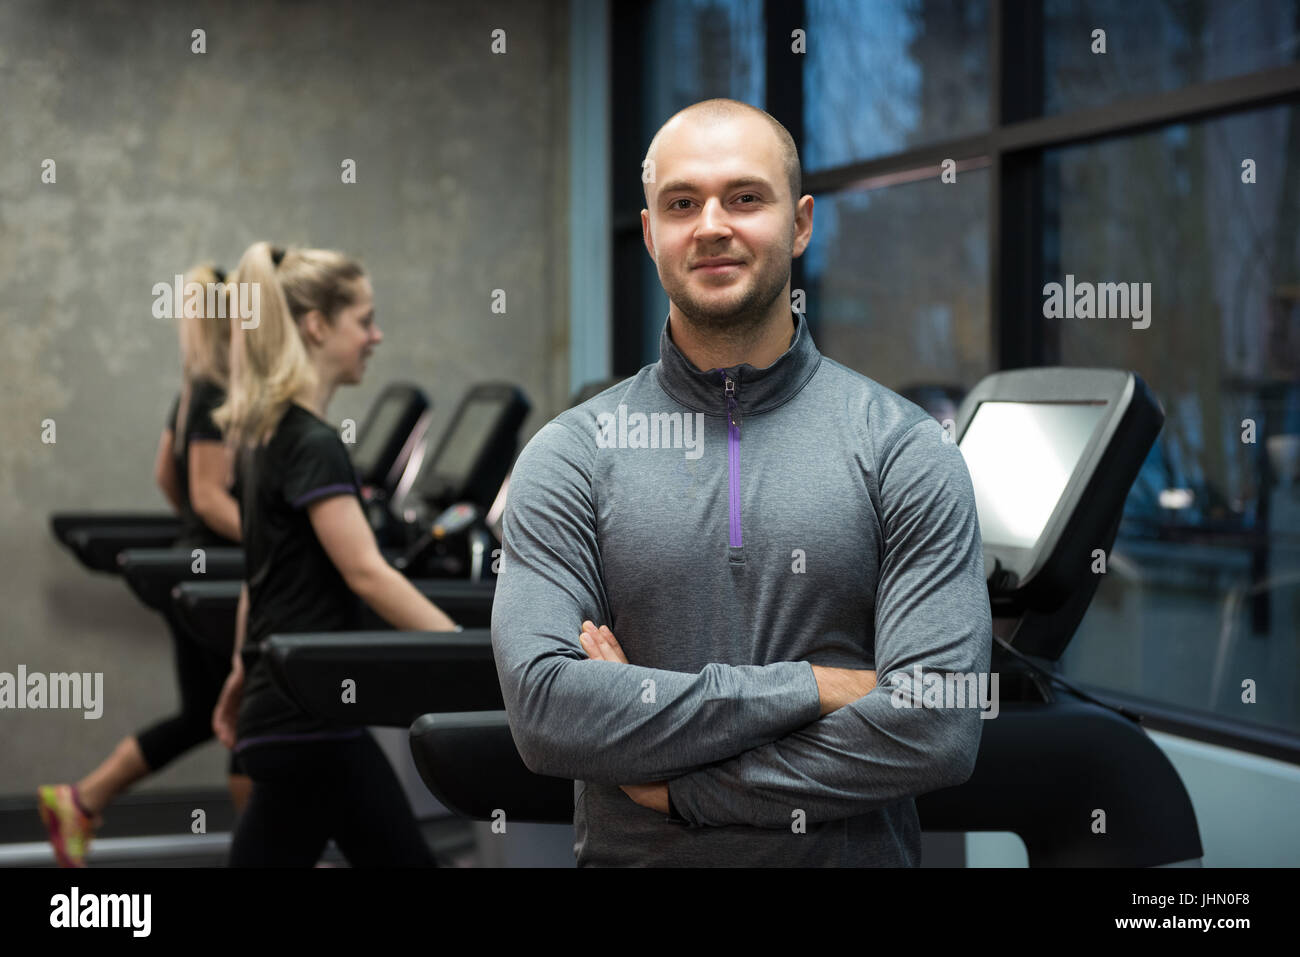 Portrait of man standing with women exercising on treadmills at gym - Stock Image